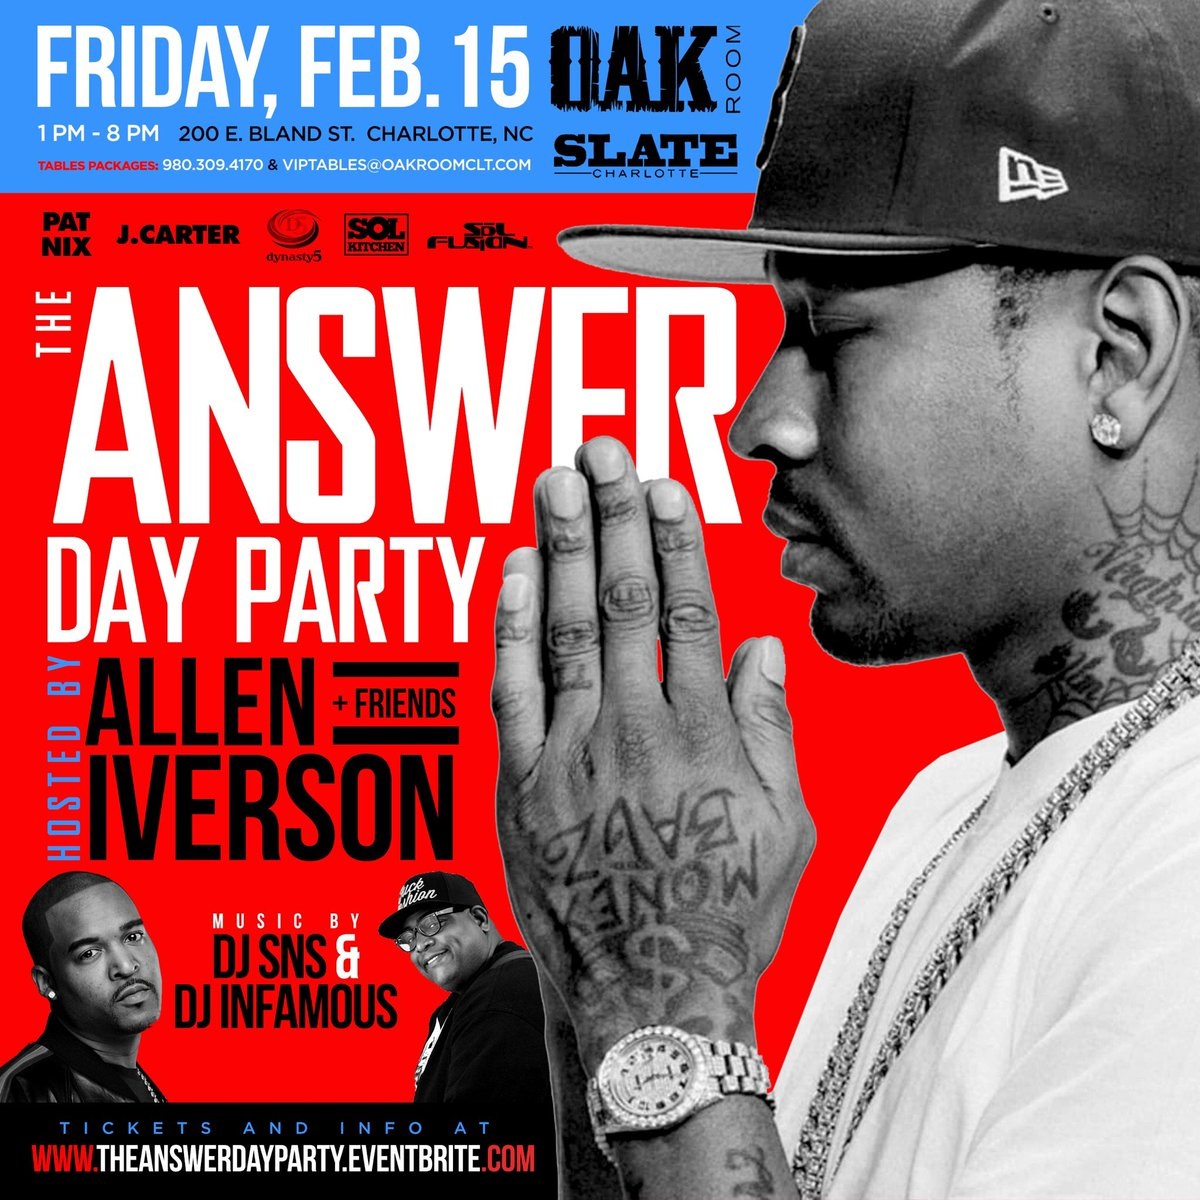 This Friday meet me at Oak Room in Charlotte!!! Be there or hear about it!!!